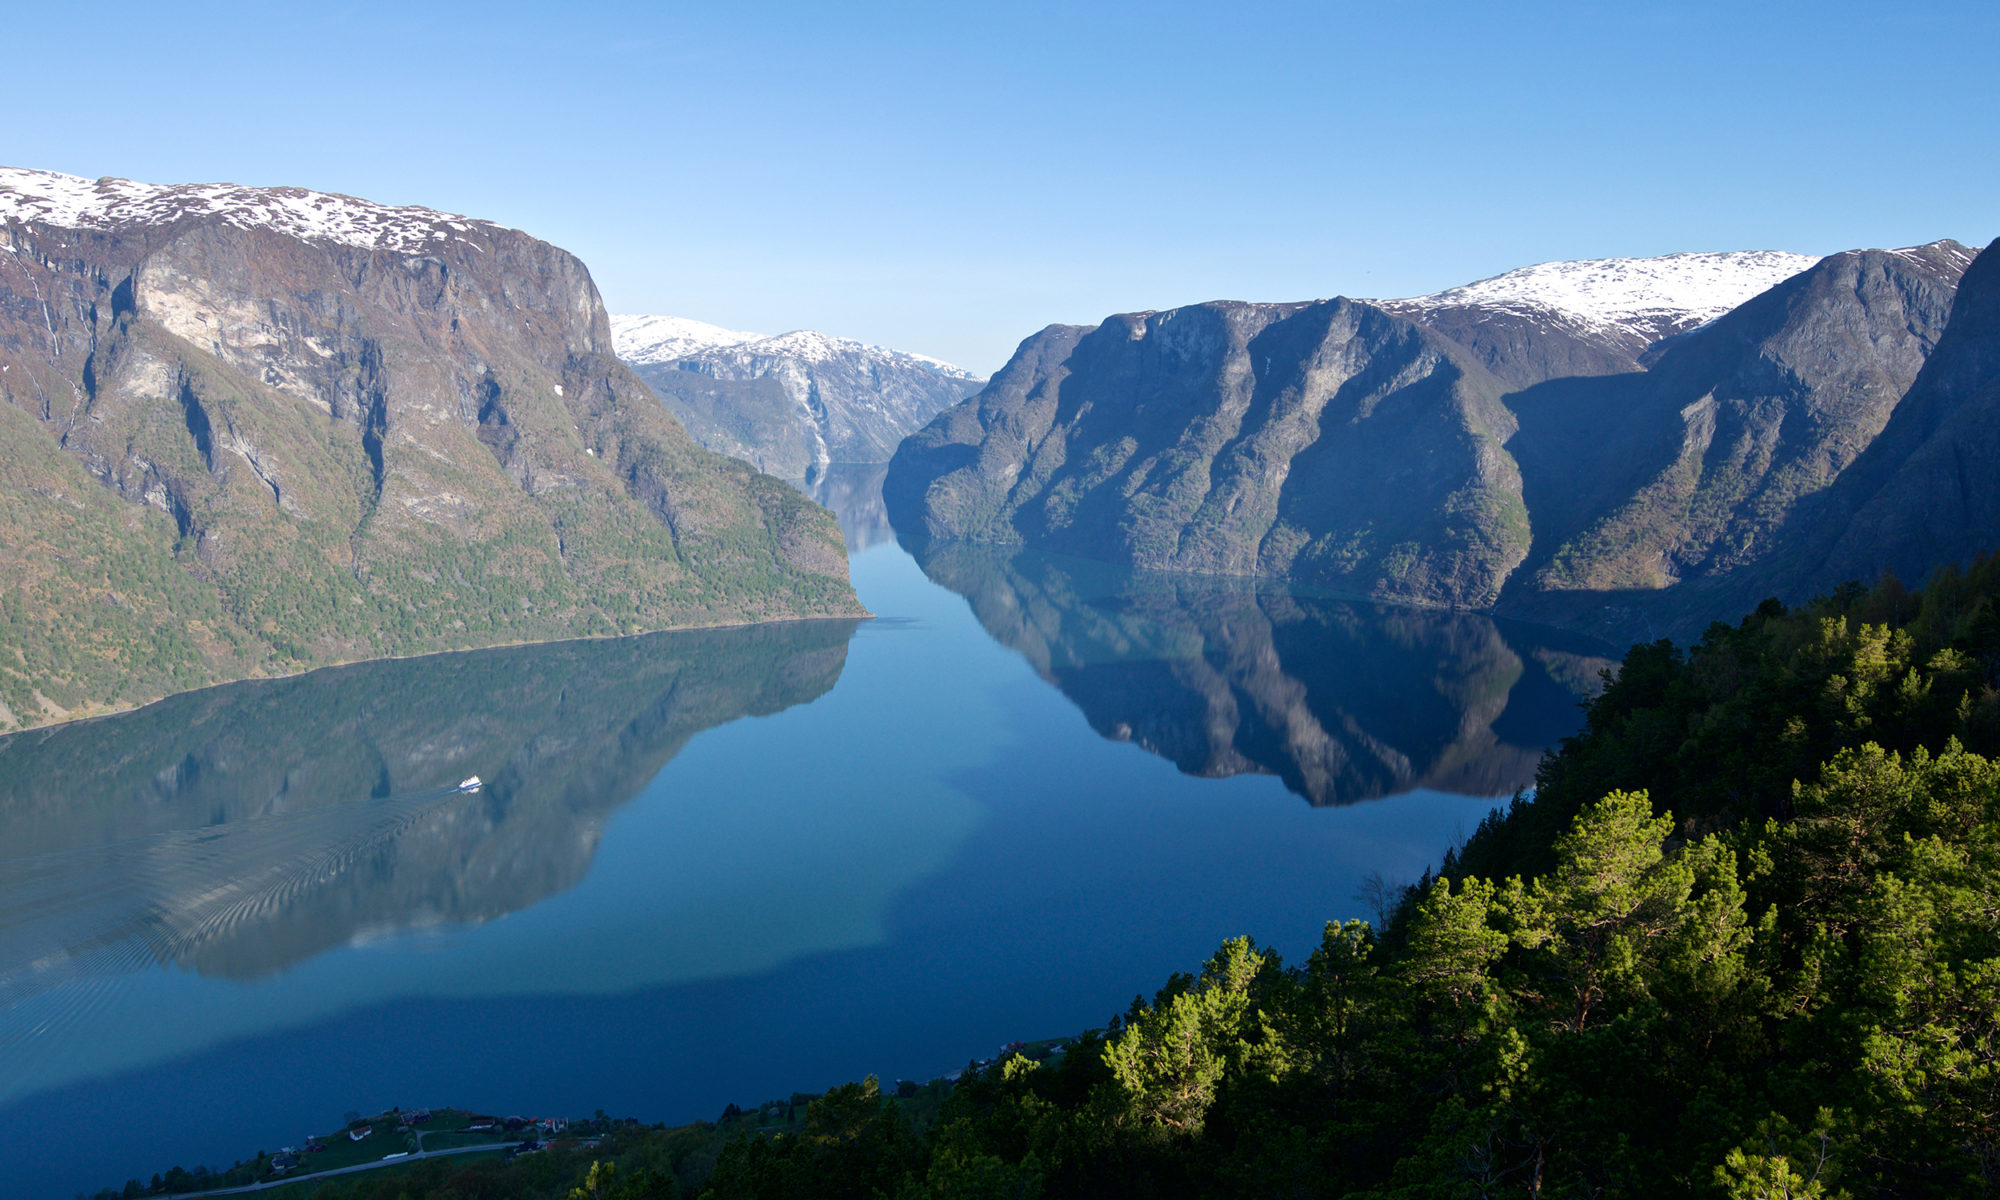 FJORDS NORWAY - Aurland and the Aurlandsfjord